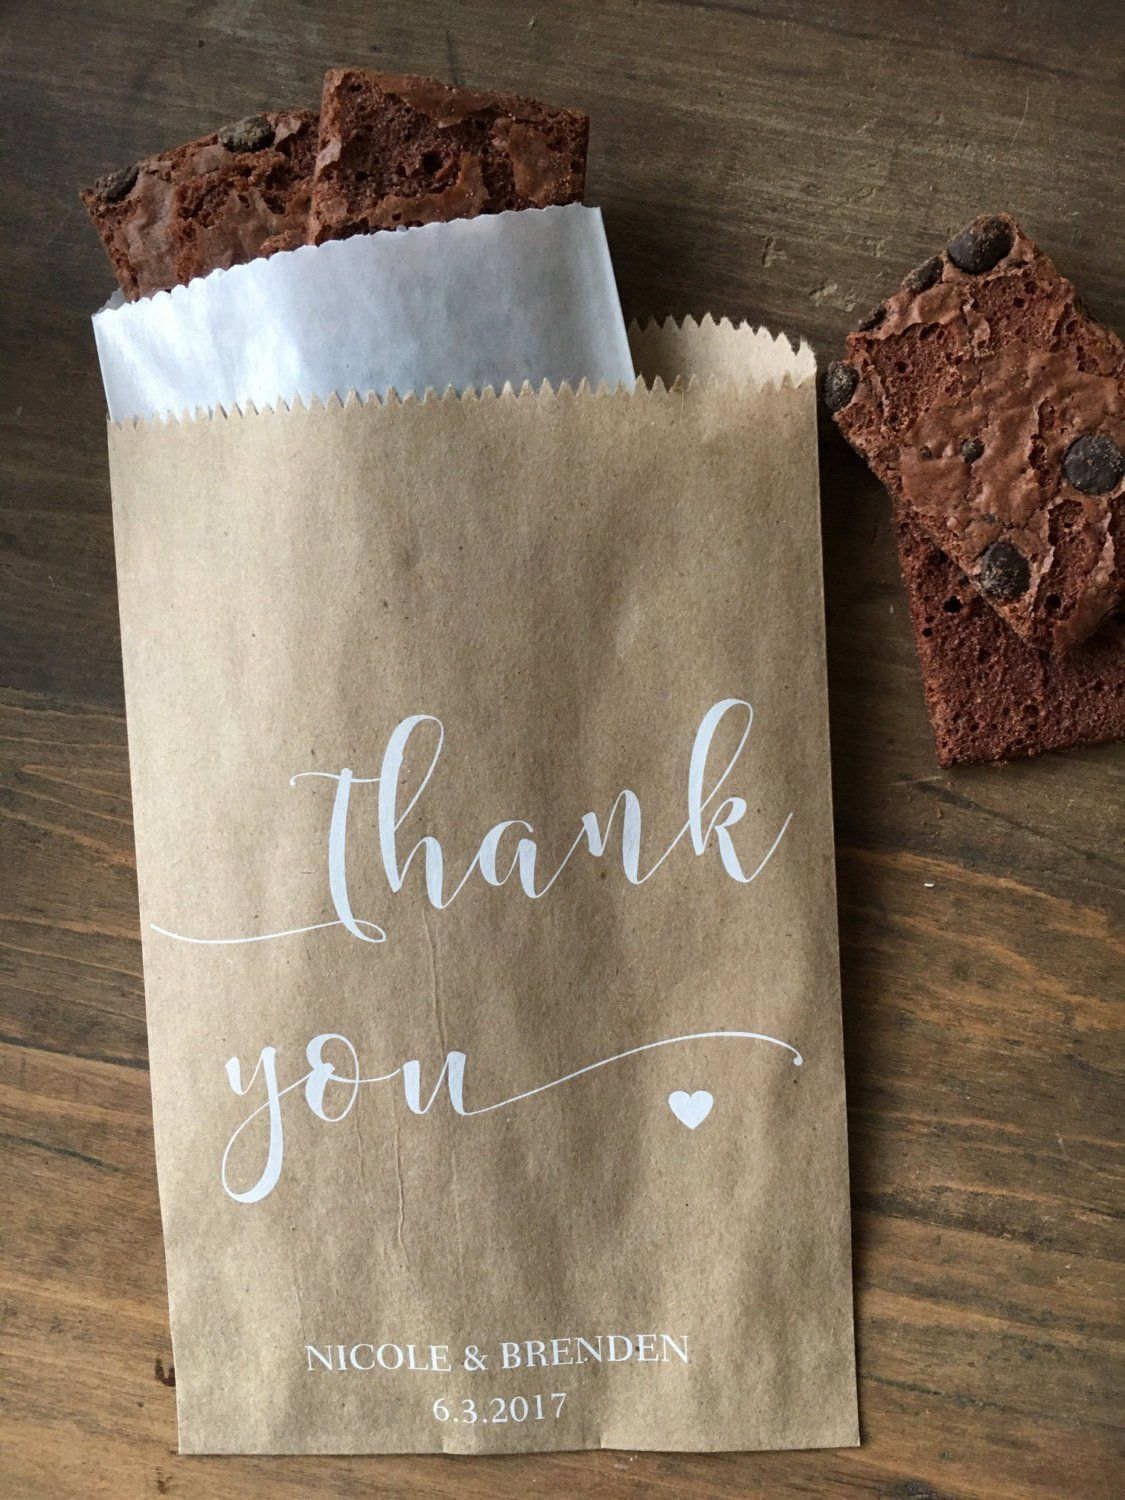 Strange Wedding Favor Bags Cookie Or Candy Buffet Bags Dessert Home Interior And Landscaping Palasignezvosmurscom